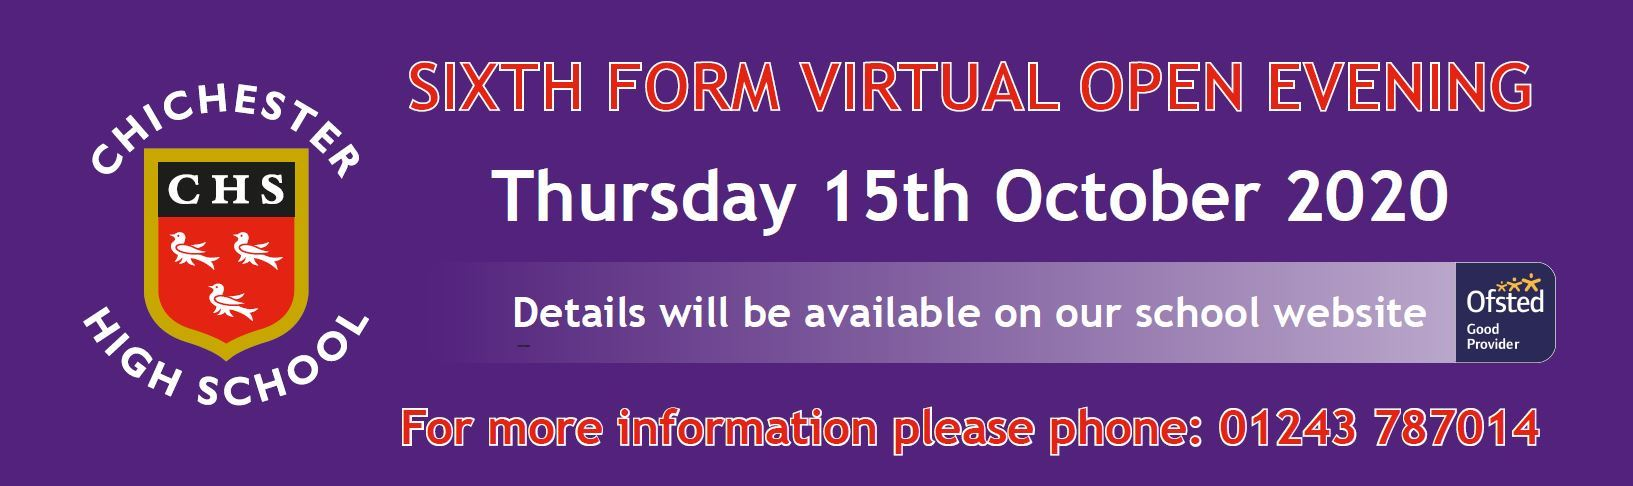 Sixth Form Virtual Open Evening 2020